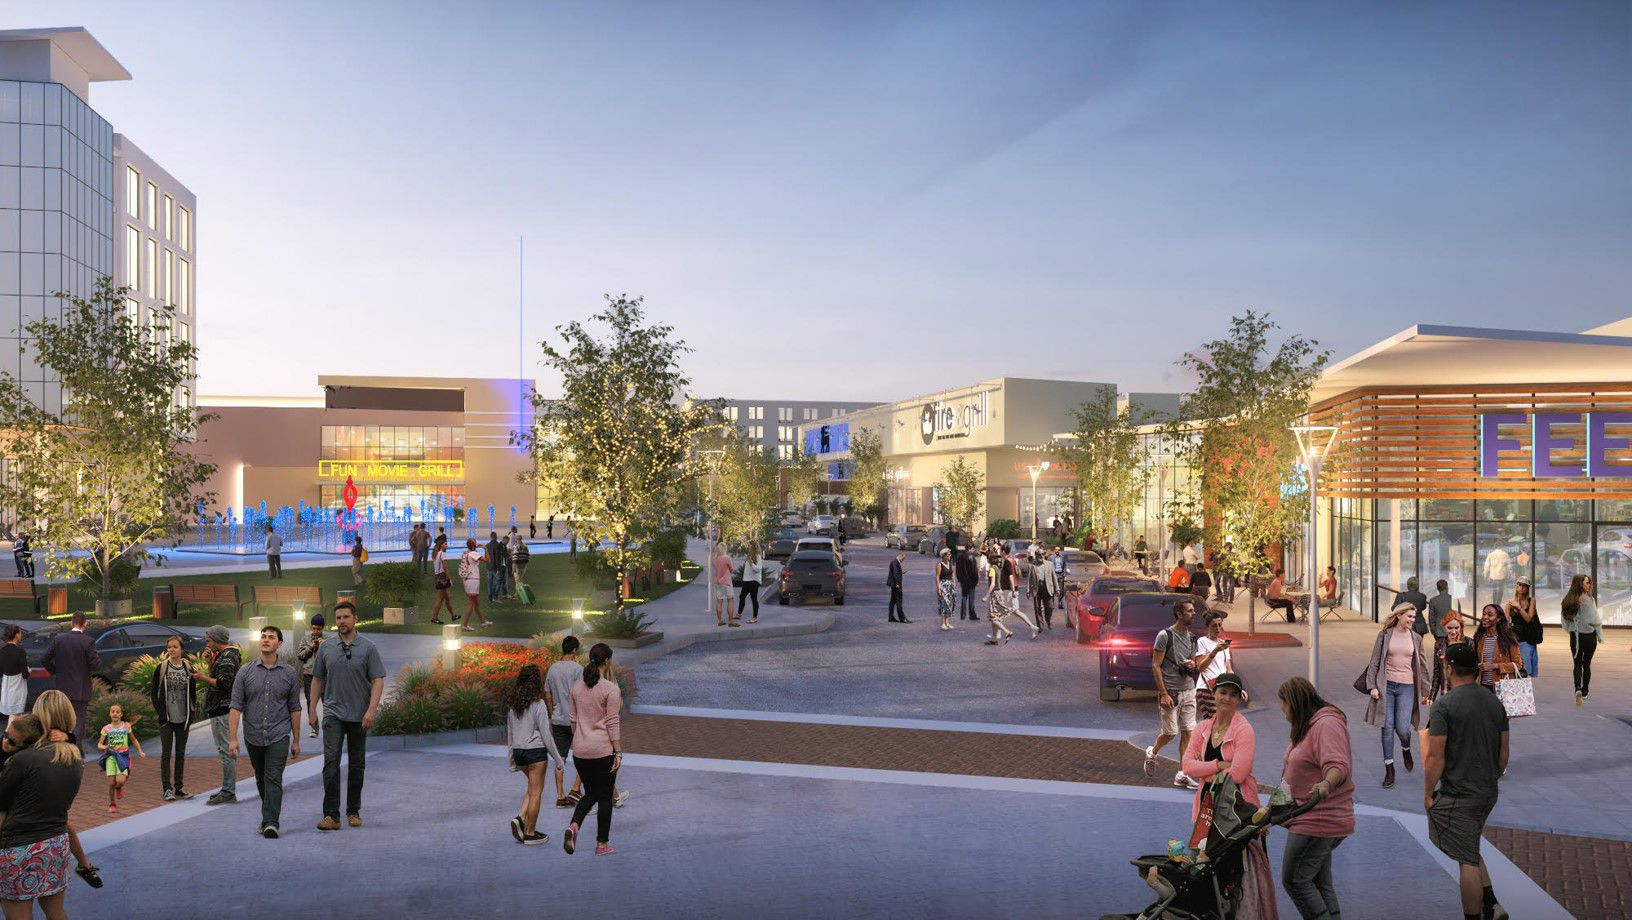 Along with Fun Movie Grill, Mustang Square includes retail, office and residential buildings.